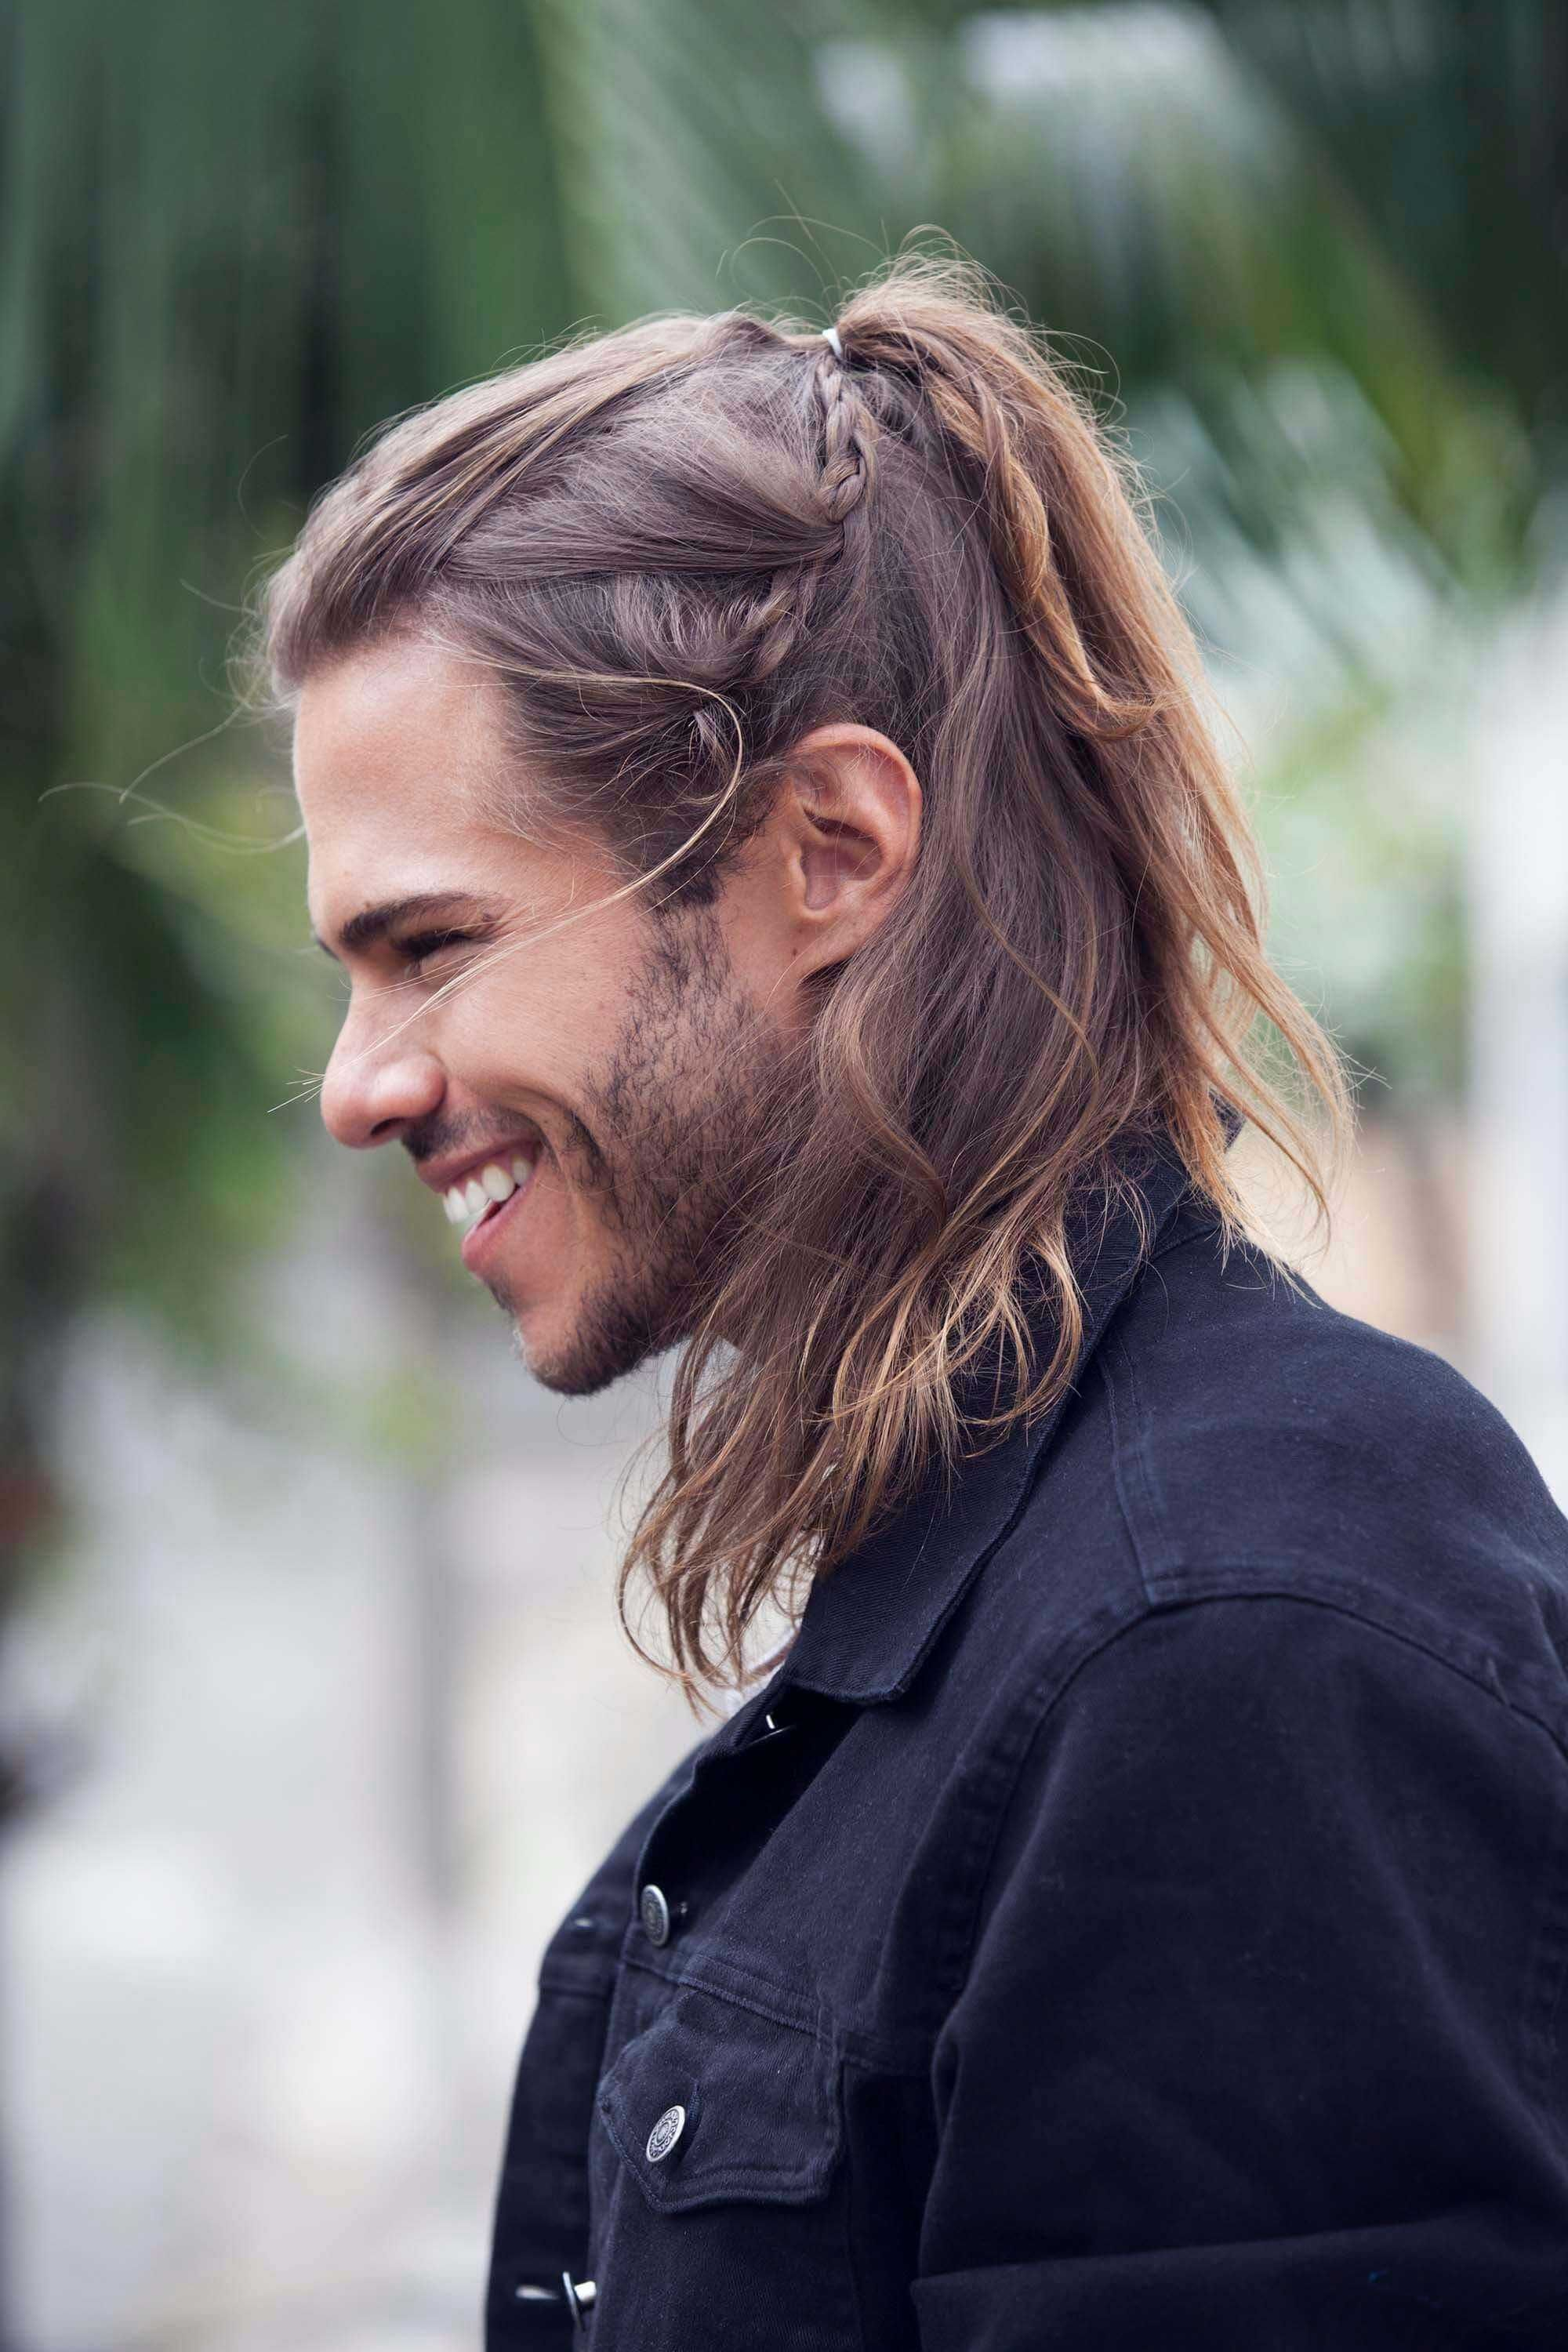 23 Macho Hairstyles For Men With Long Hair Manlikemarvinsparks Com Mens Braids Hairstyles Long Hair Styles Men Man Ponytail